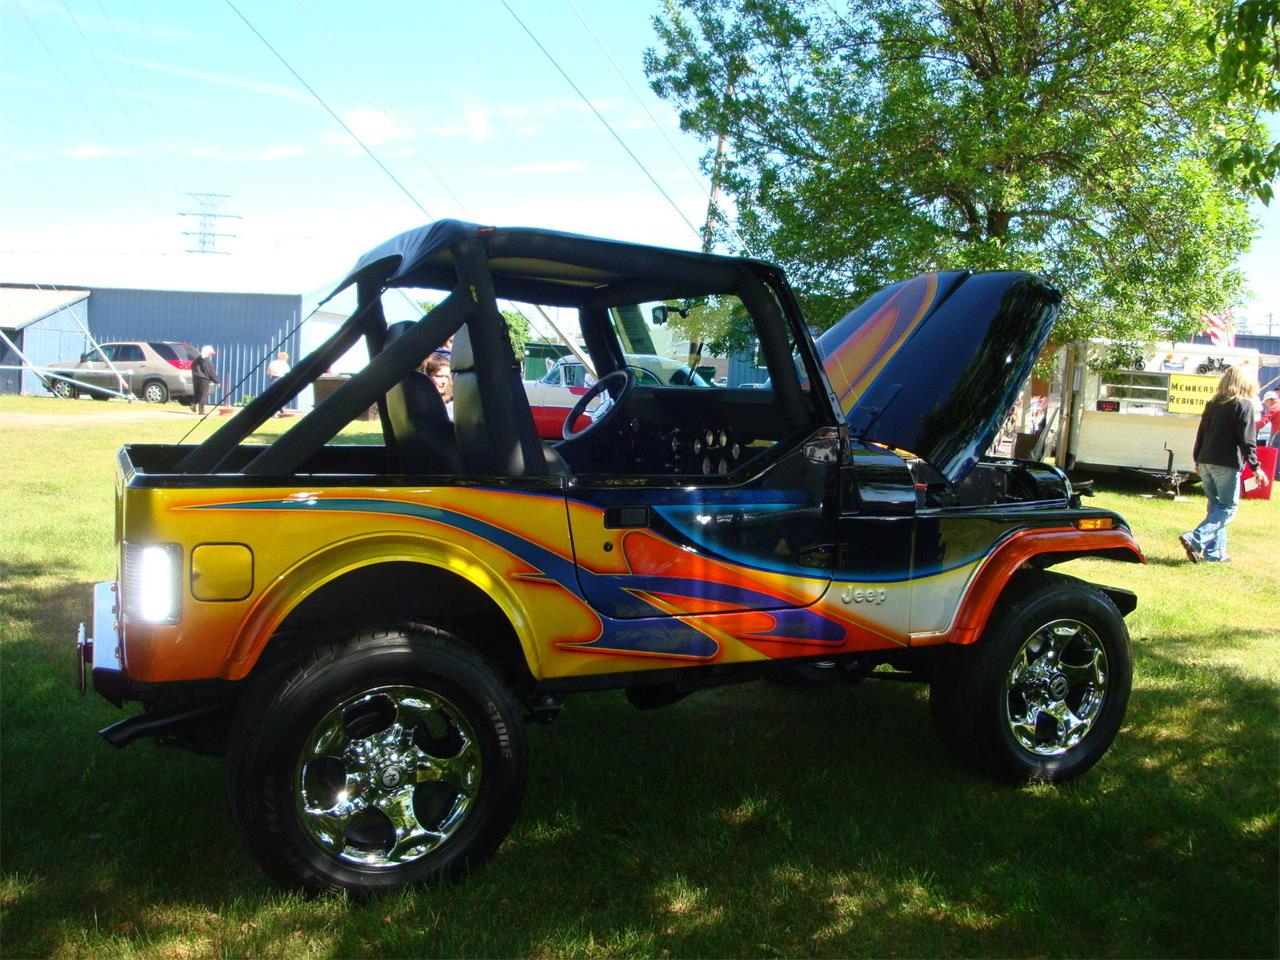 Large Picture of 1983 CJ7 located in Wausau Wisconsin - $29,500.00 Offered by a Private Seller - KPJM